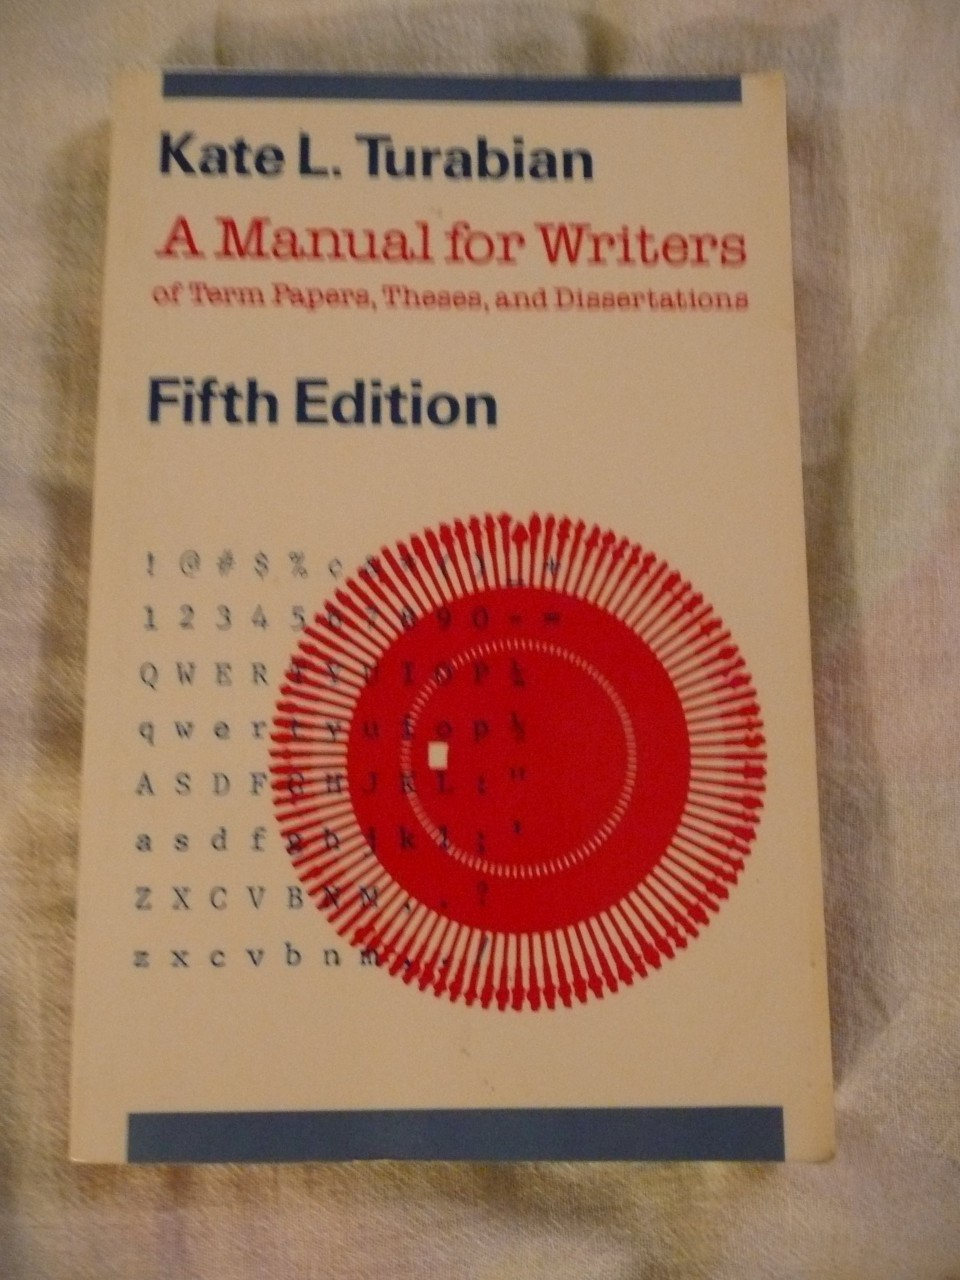 014 Research Paper Manual For Writers Of Papers Theses And Dissertations Magnificent A Amazon 9th Edition Pdf 8th 13 960